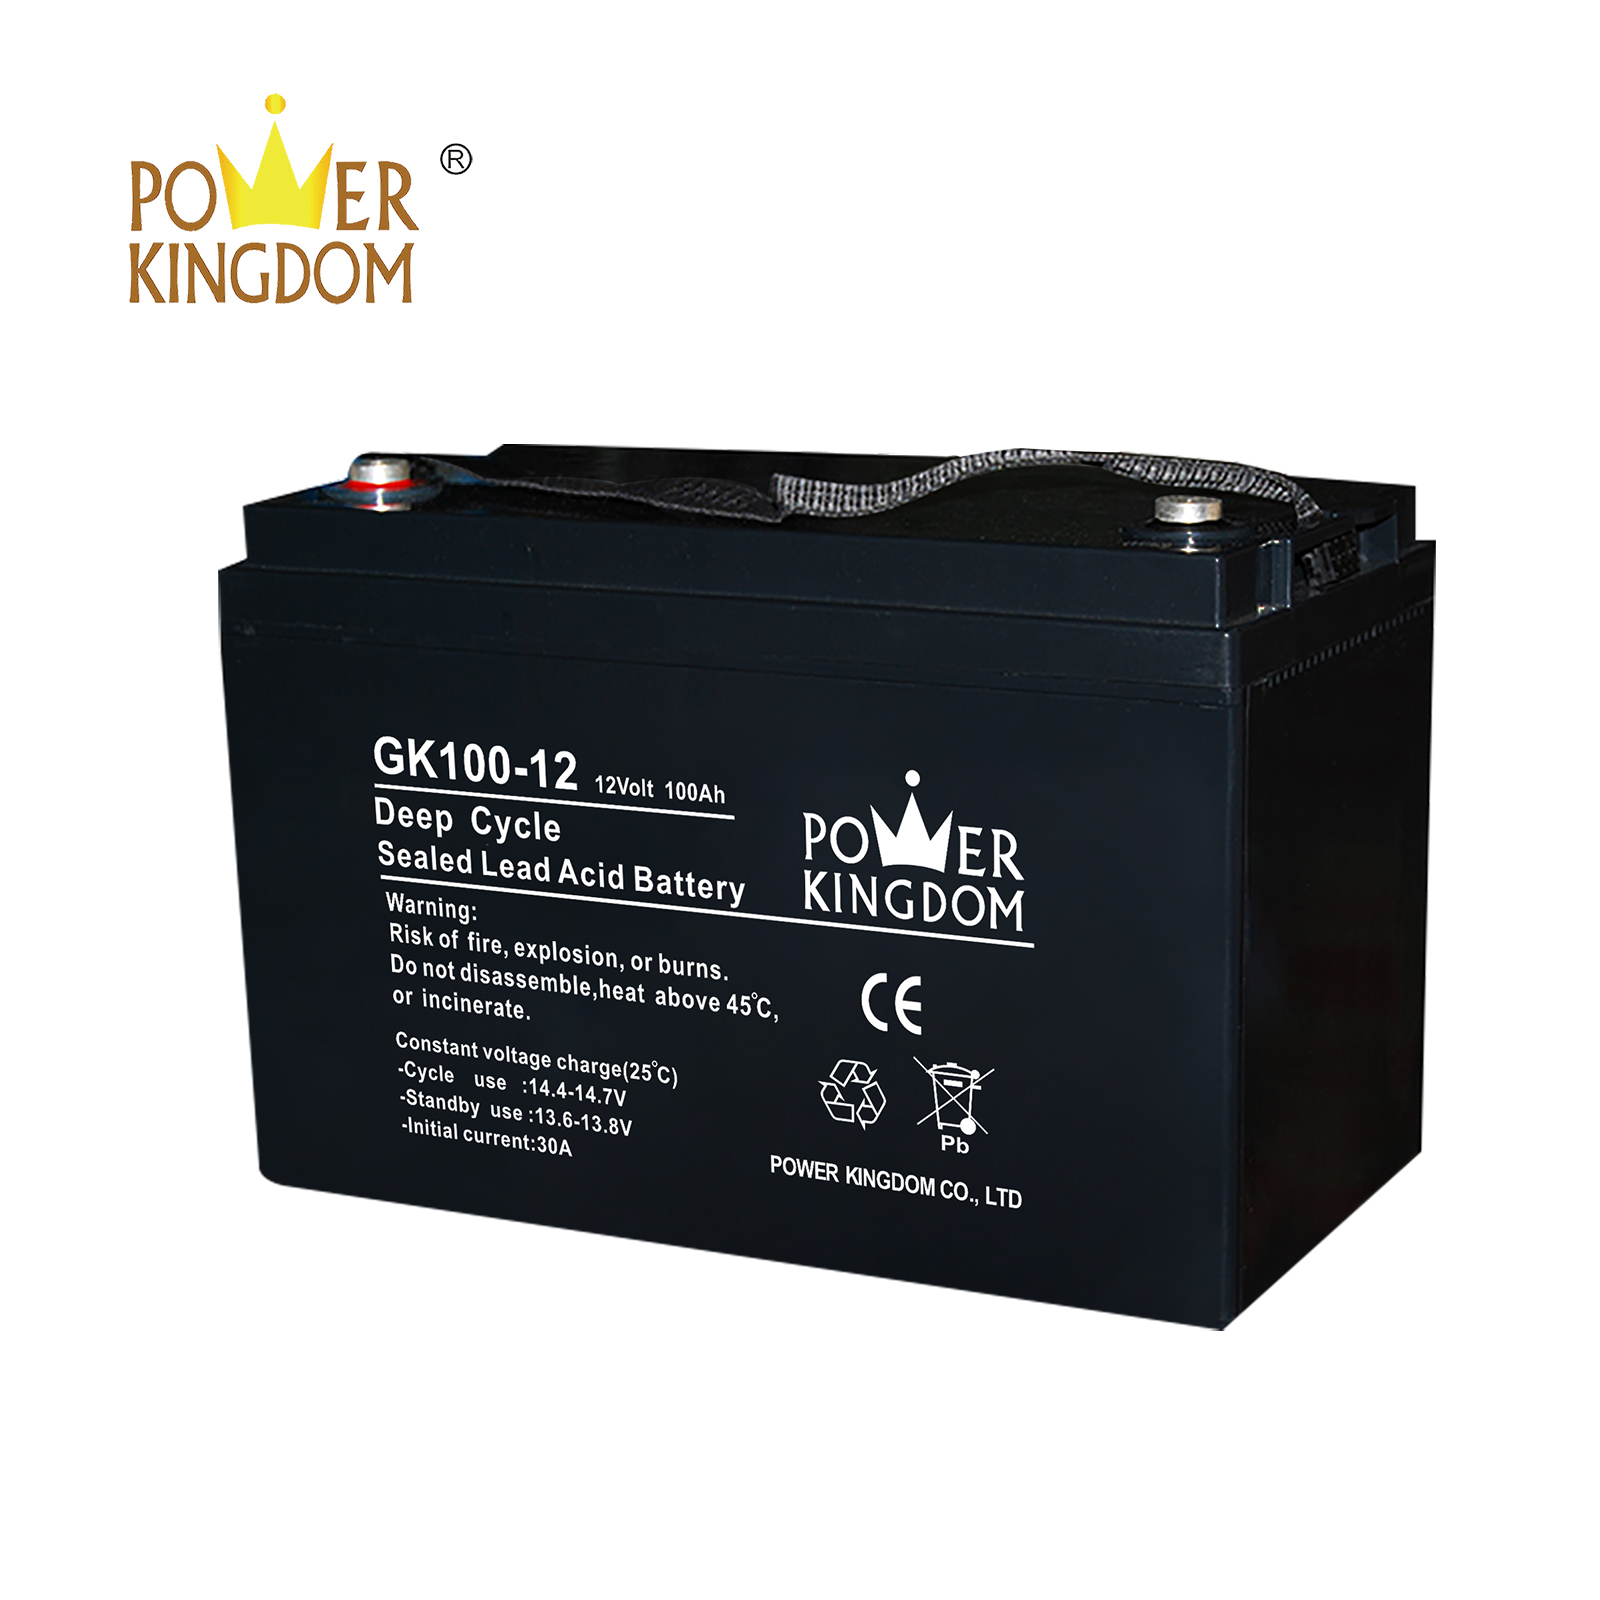 Power Kingdom long standby life ups battery pack factory solor system-2